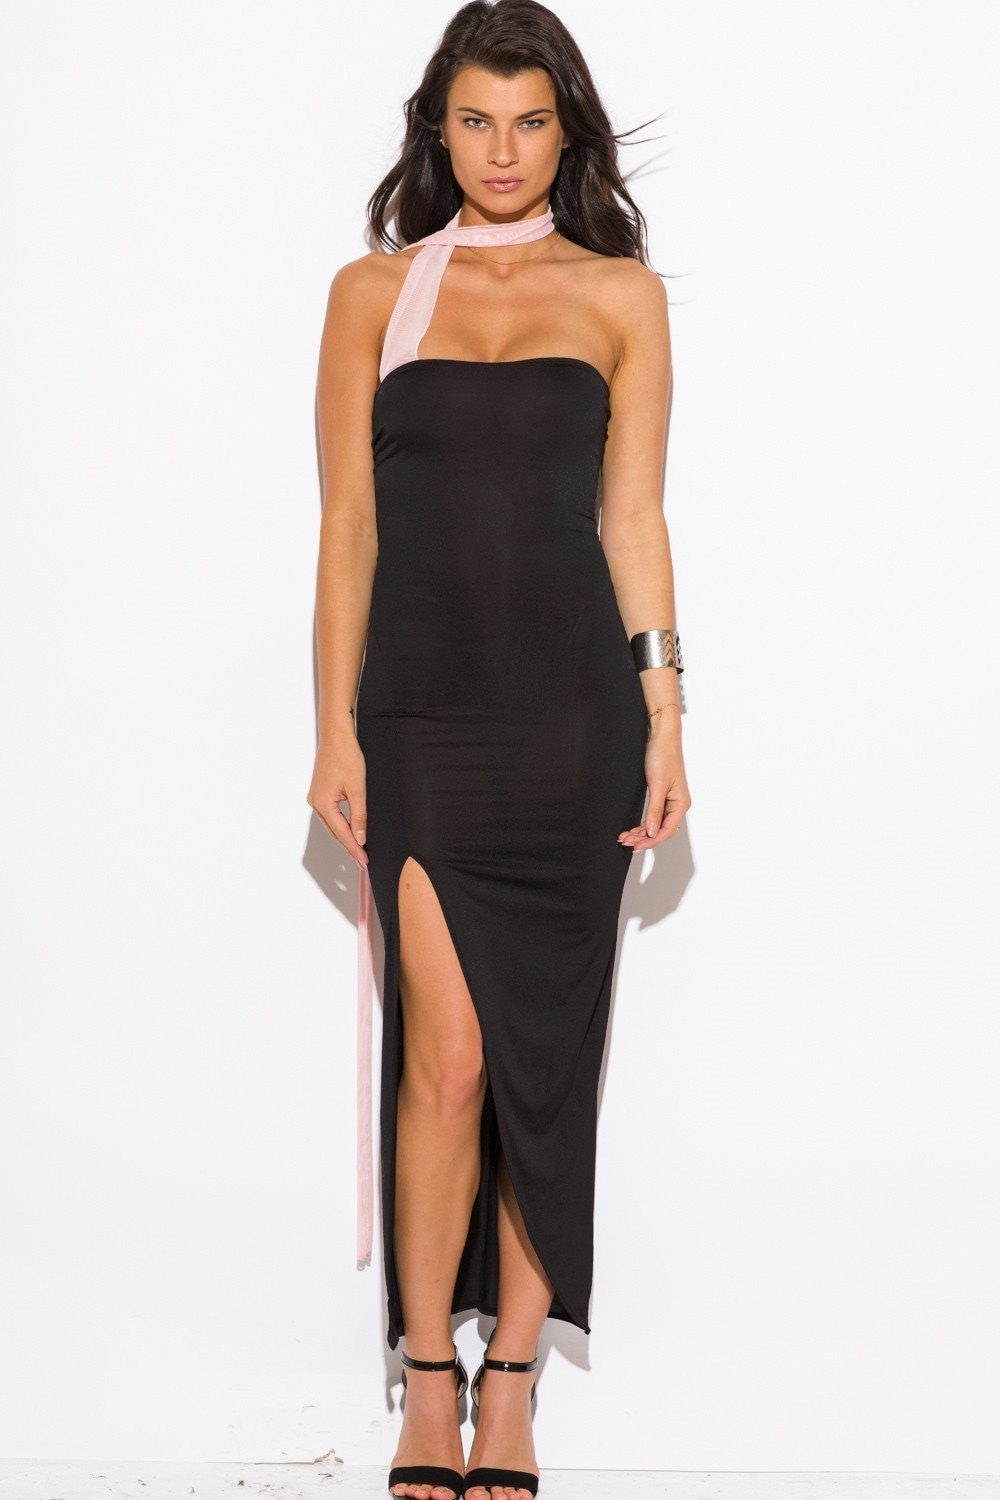 Lucy Evening Dress - Budget Babe Couture